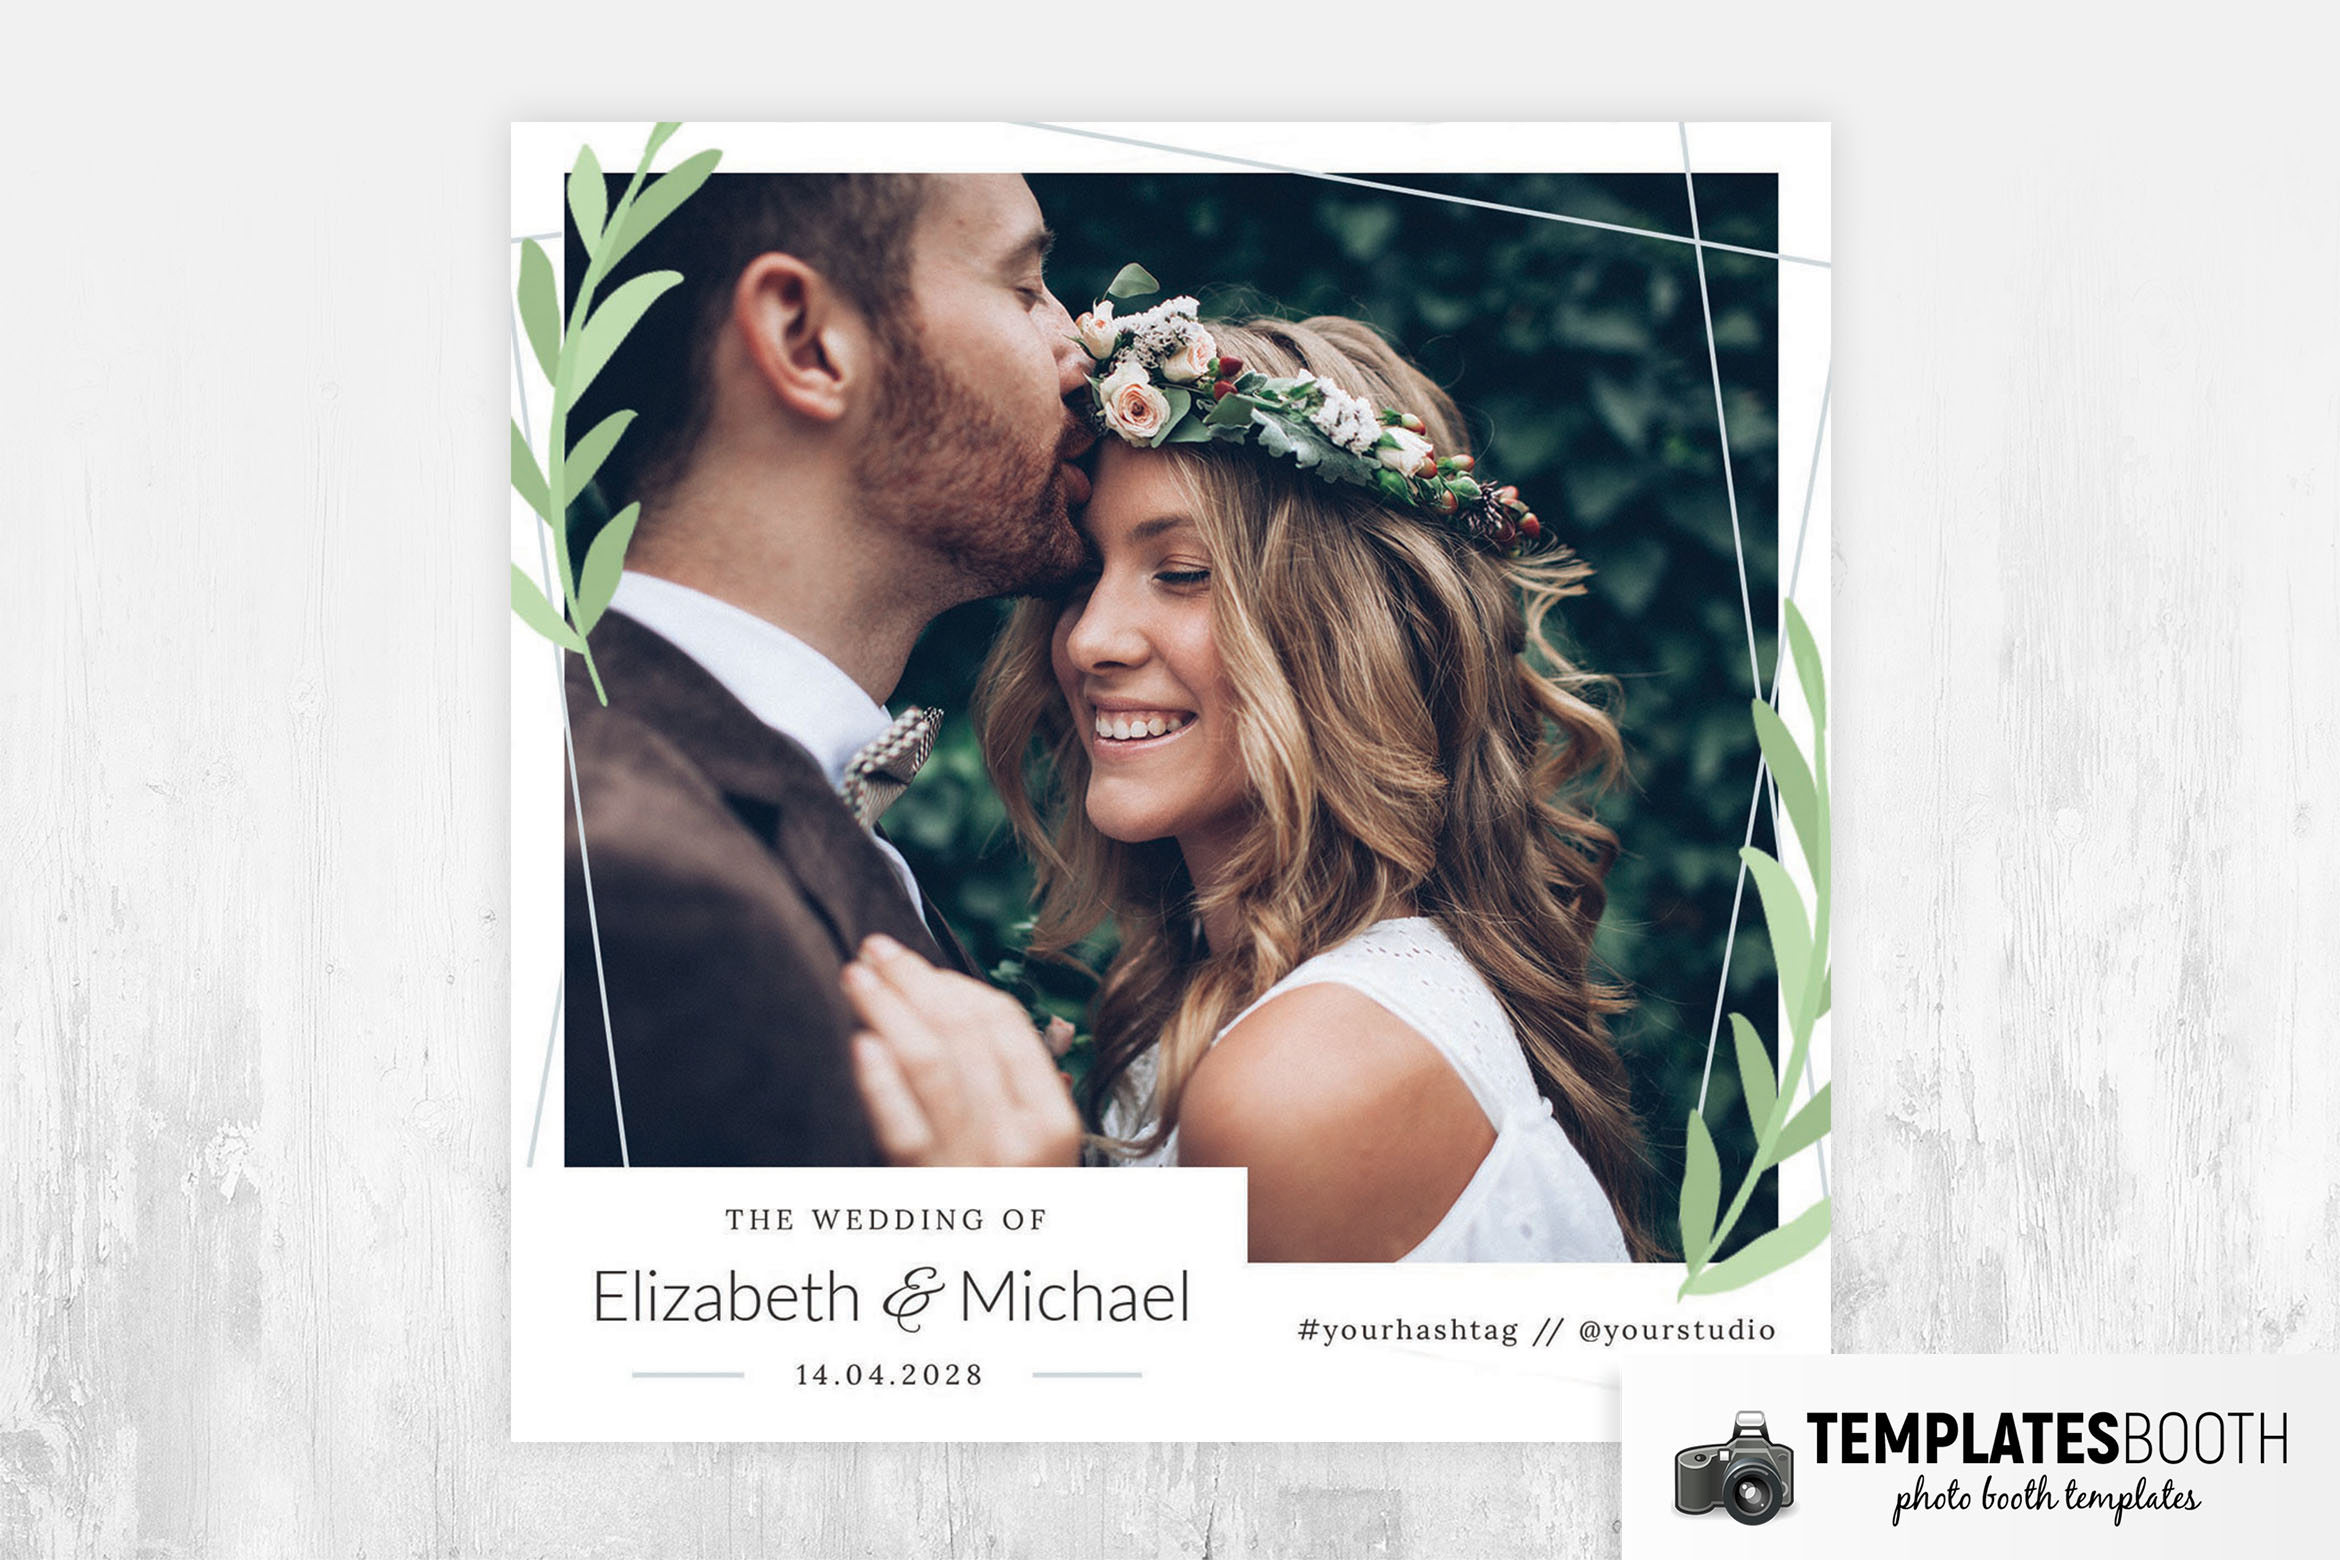 Simple Minimal Photo Booth Template